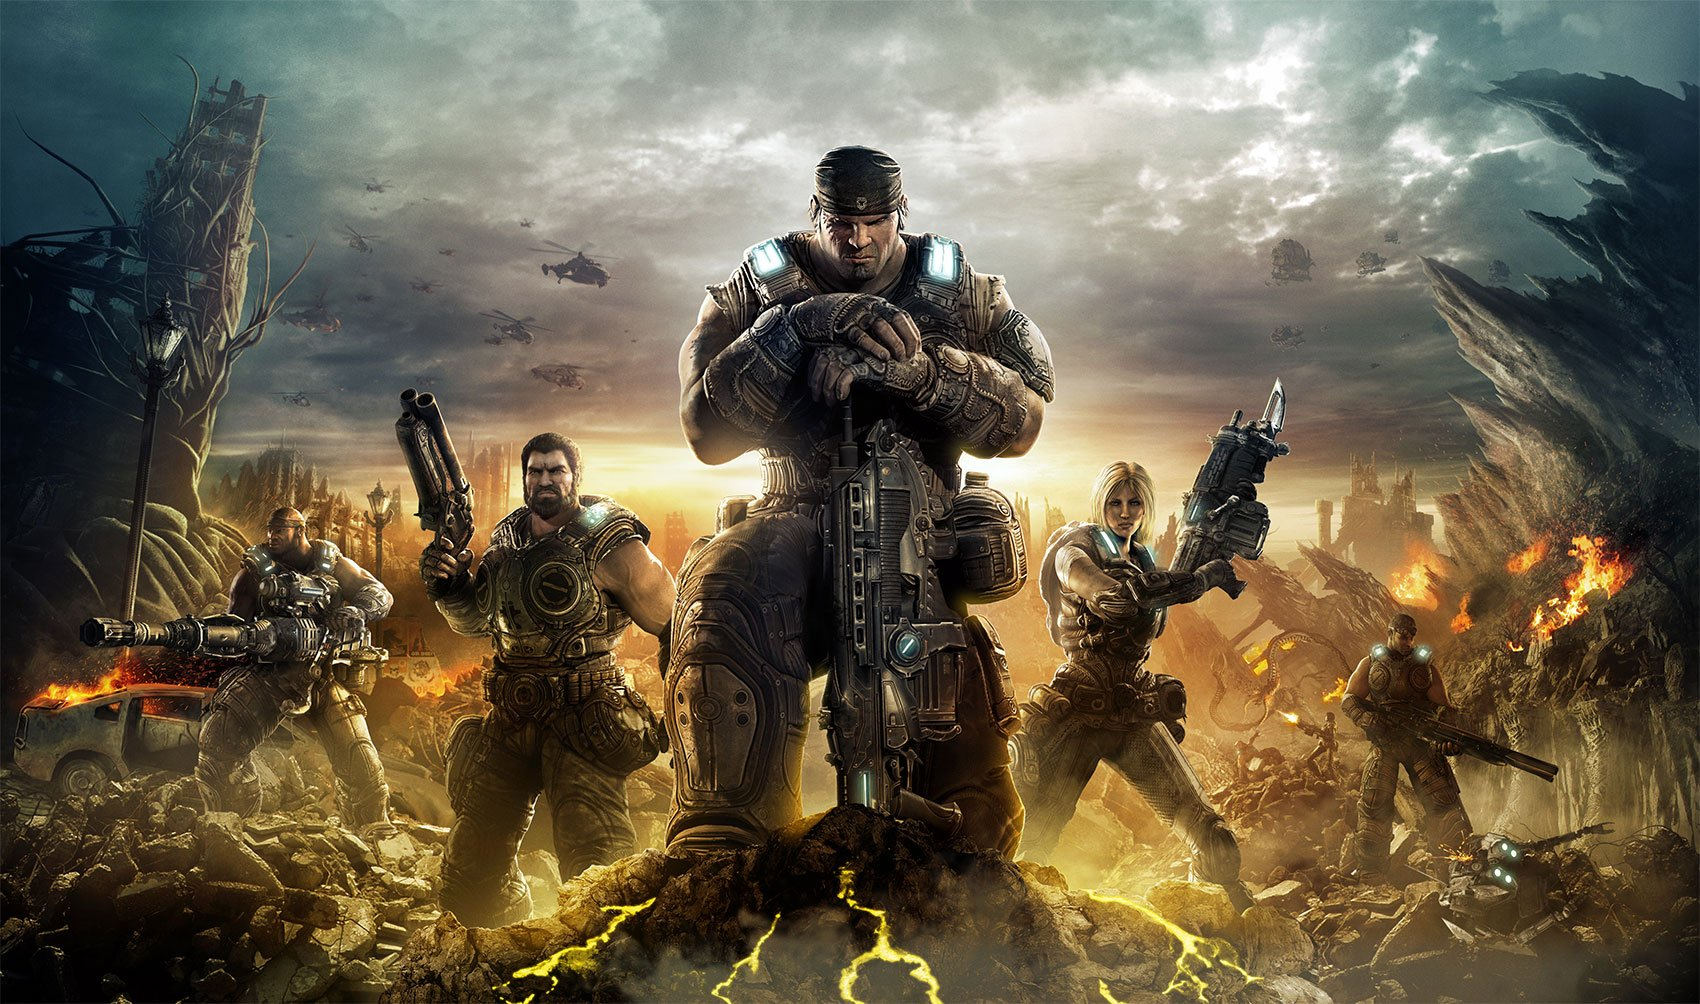 Gears of War Gaming Case Study